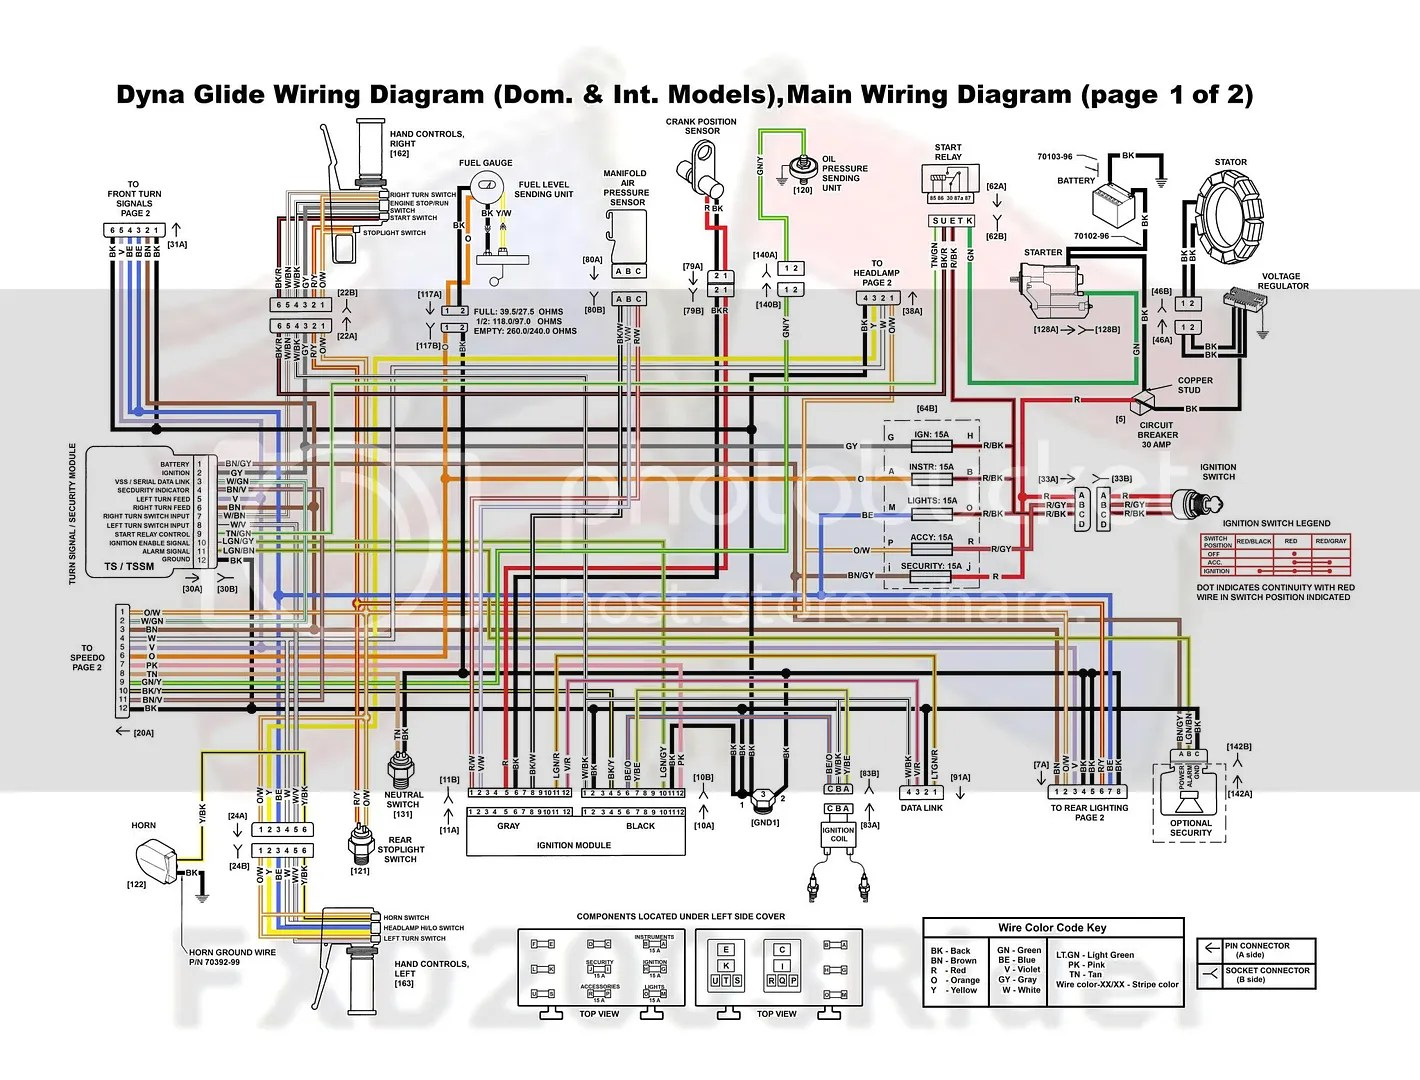 Basic Harley Panhead Wiring Diagram | Wiring Schematic Diagram - 13 on 1957 horn diagram, distributor wiring diagram, 1957 chevrolet ignition diagram, ignition switch schematic diagram, 1957 chevy fuse box diagram,